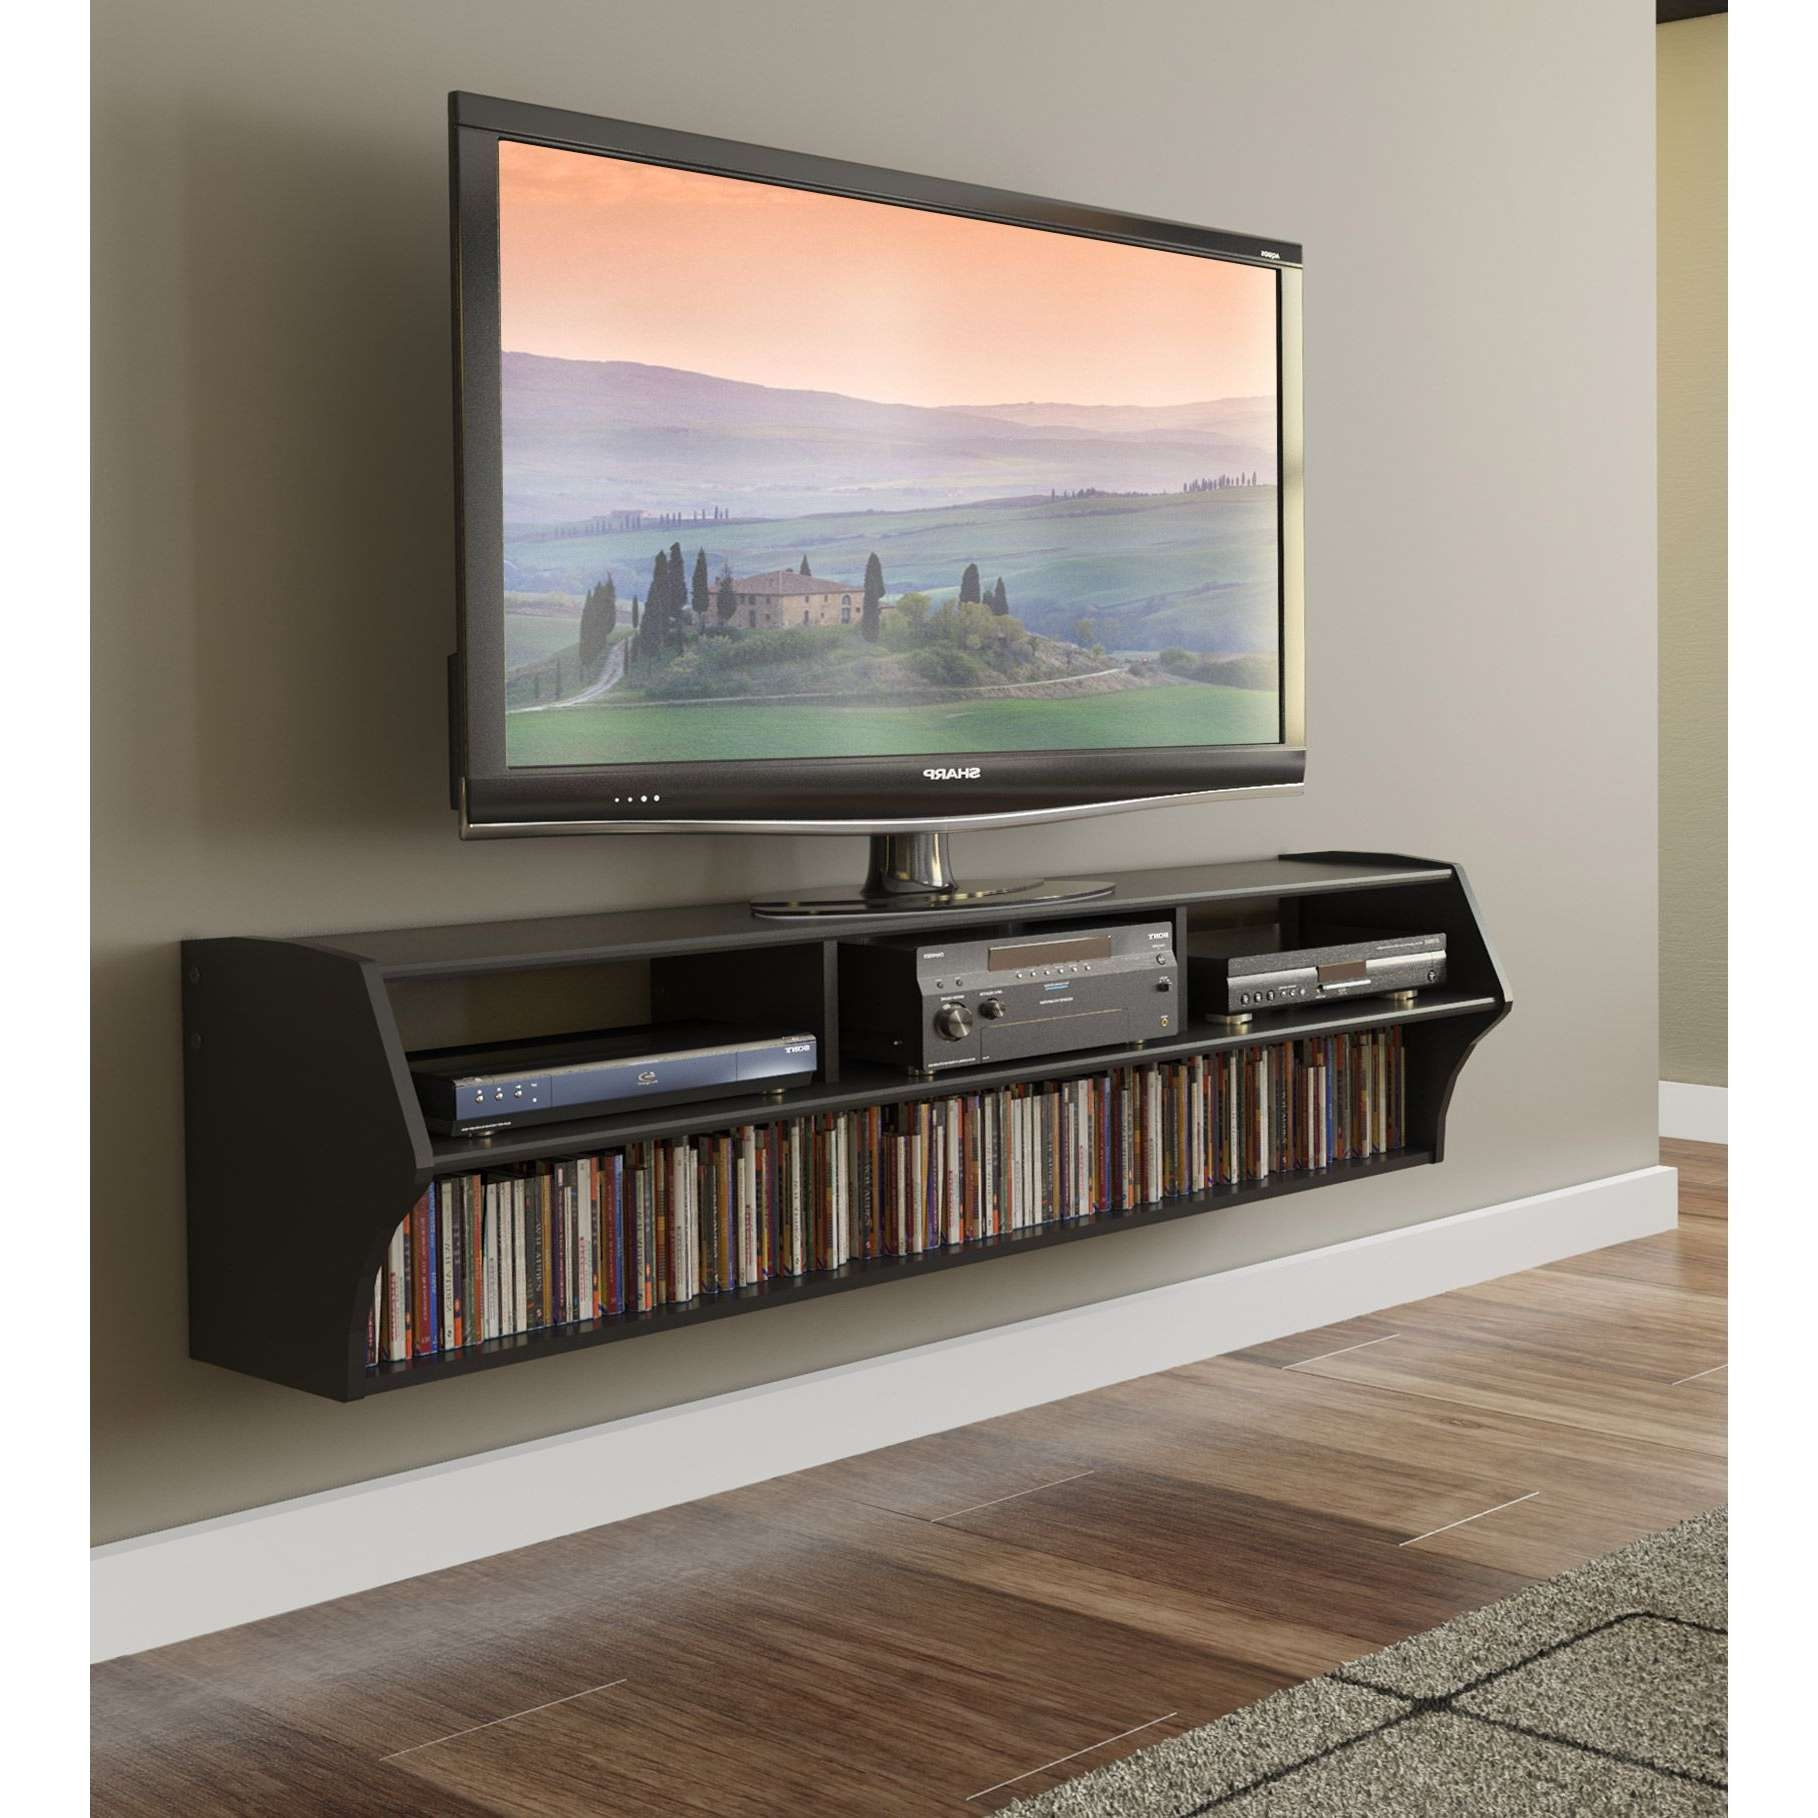 Wall Mounted Tv Entertainment Center Enchanting On Home Decors For Inside Wall Mounted Tv Stands Entertainment Consoles (View 9 of 15)